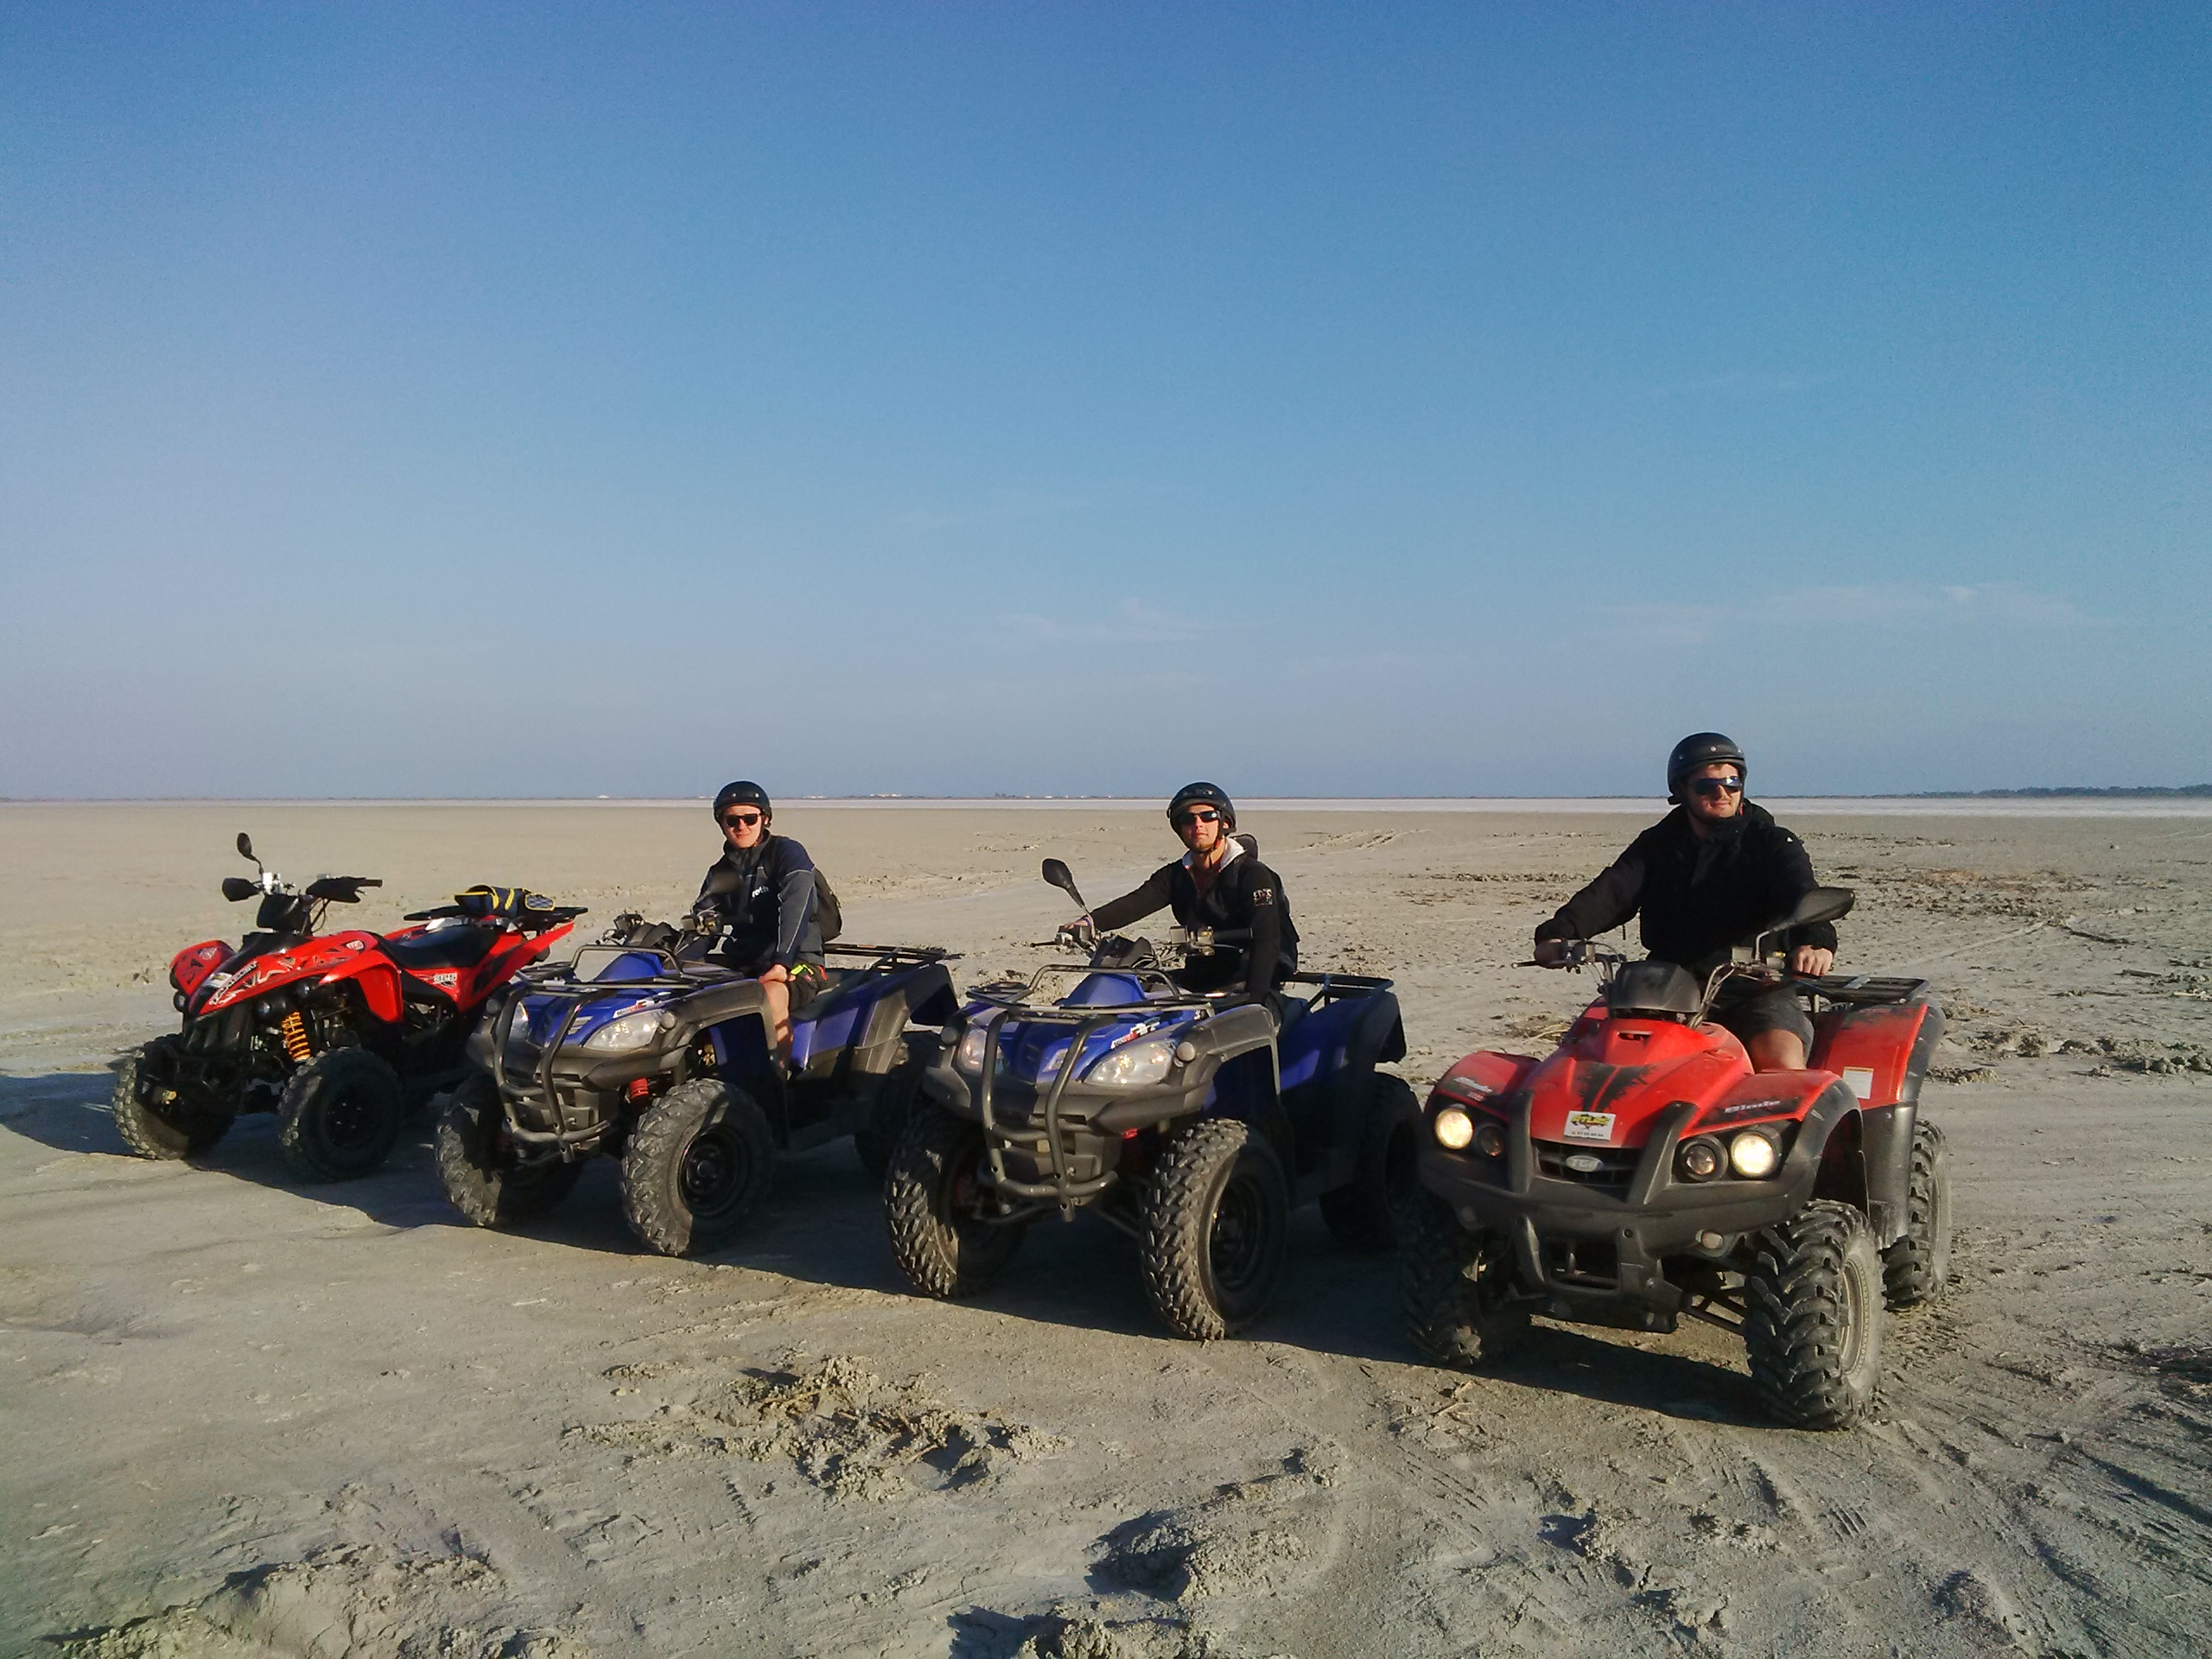 limassol salt lake adventurous day out fun atlas rentals 3&5hrs atlas rentals limassol